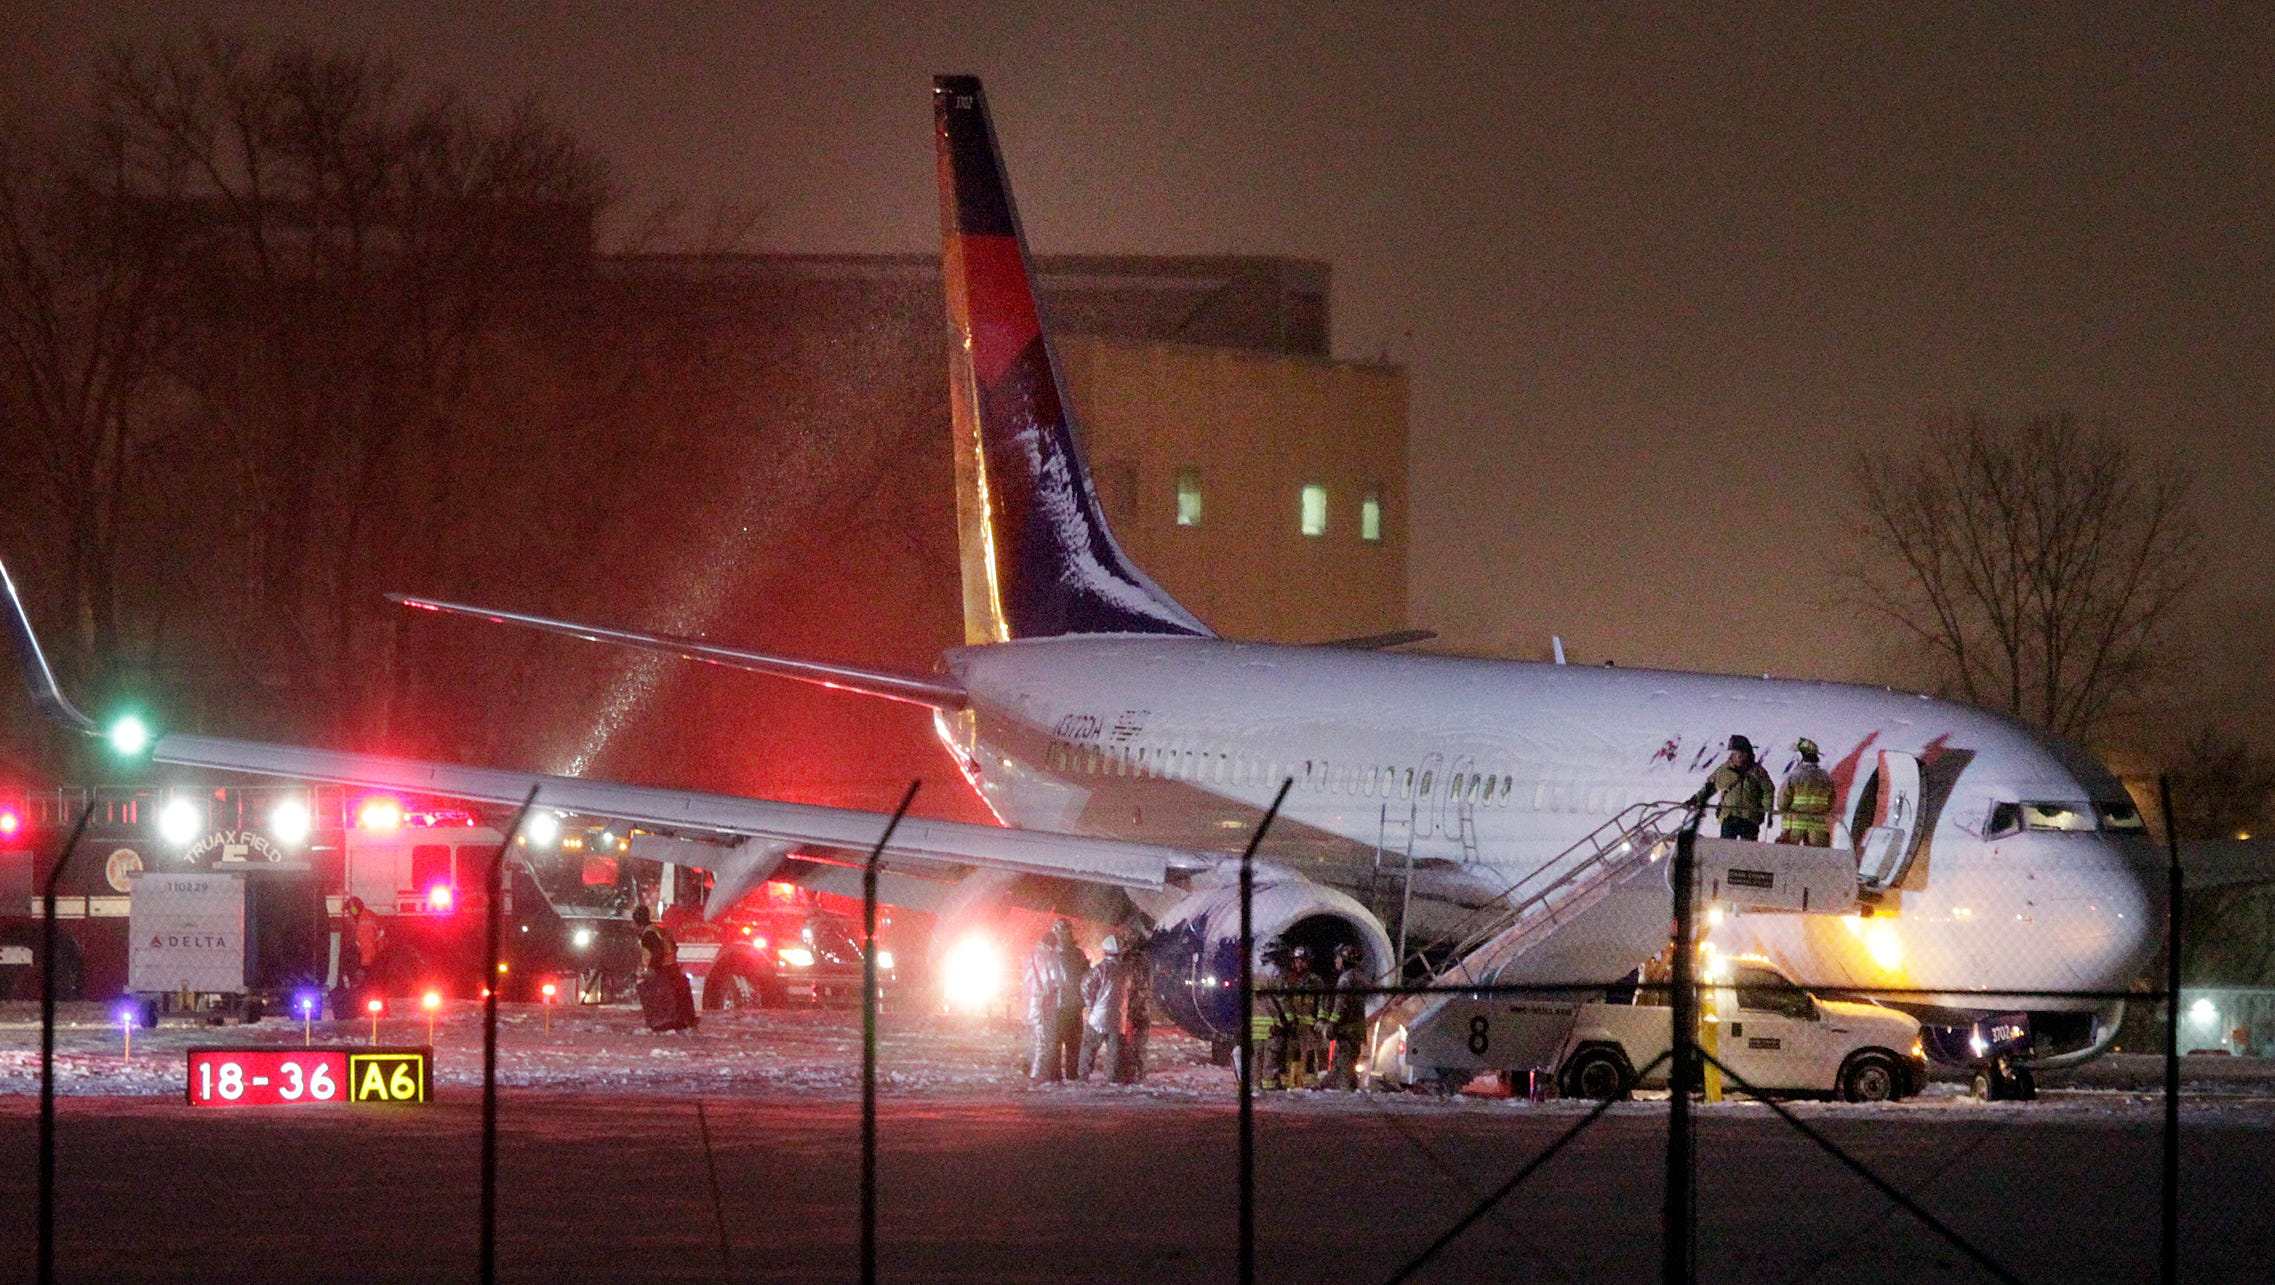 Delta 737 Slides Off Taxiway At Snowy Madison Airport